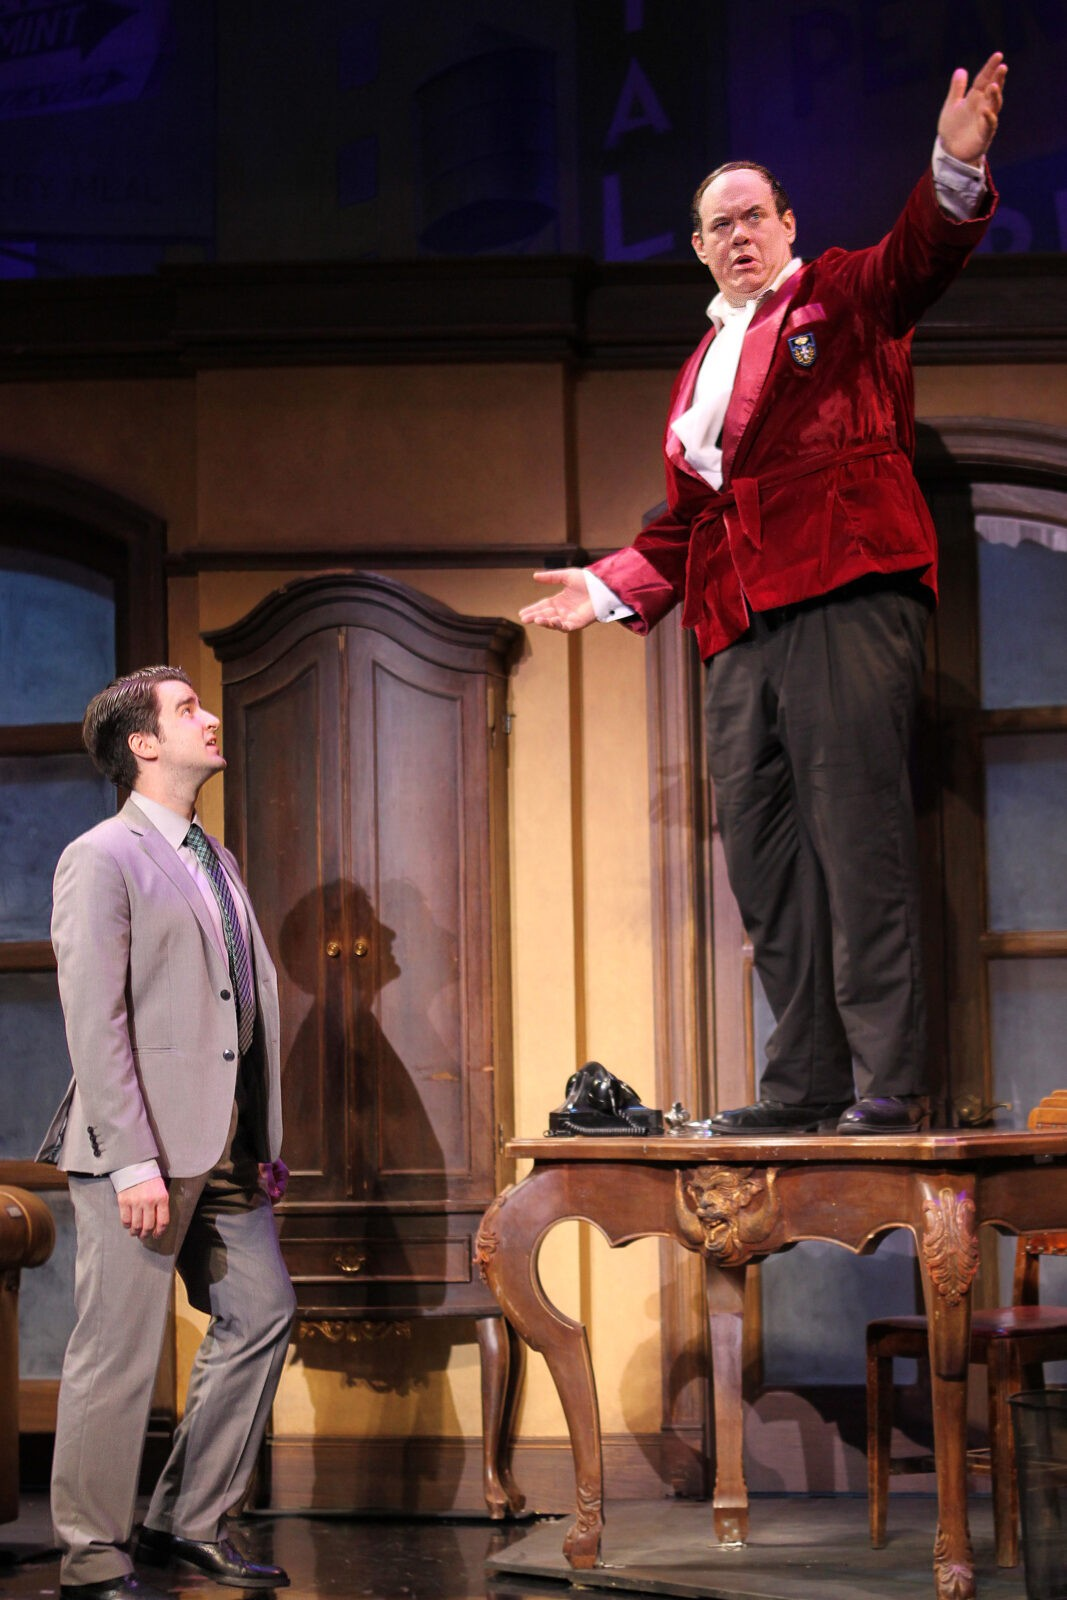 Richard Lafleur as Bloom and David Johnson as Bialystock in THE PRODUCERS